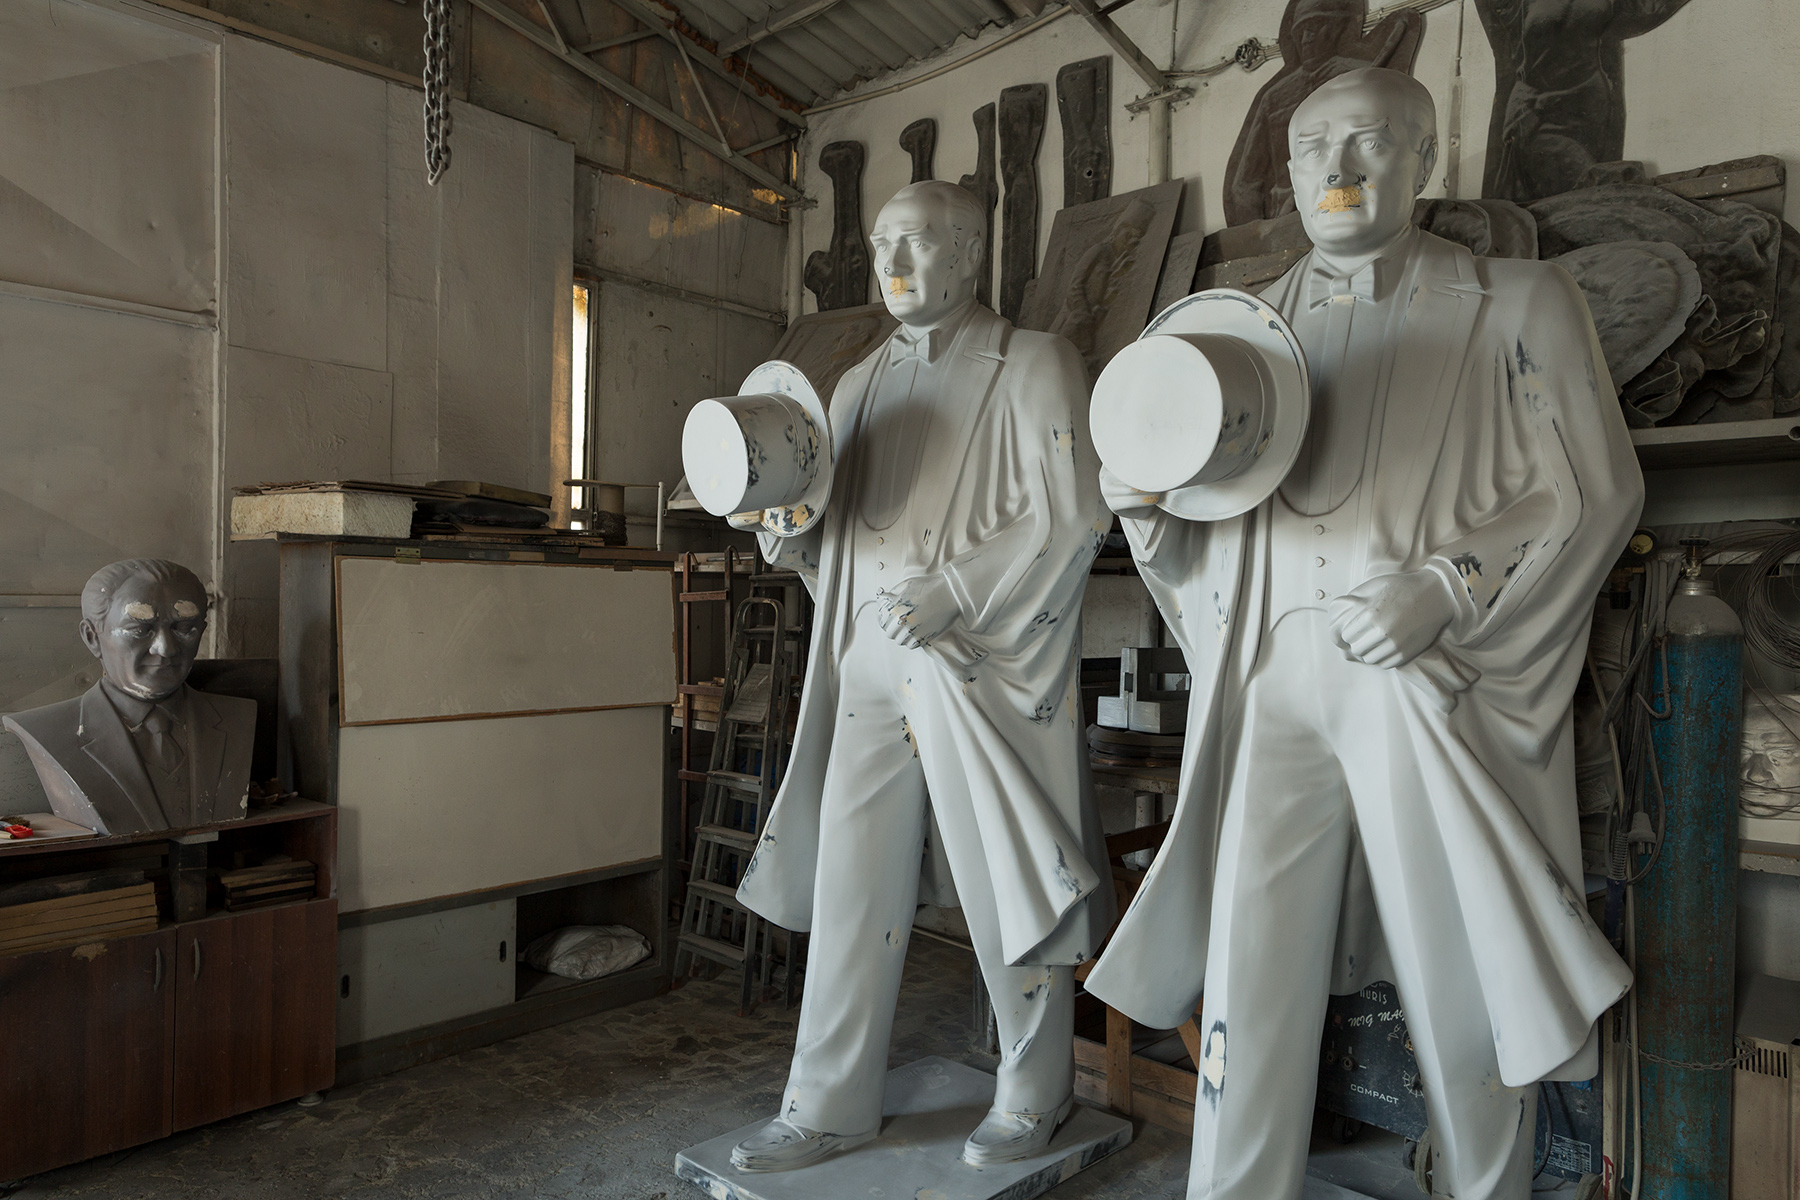 Turkey, 2017 - Production moulds for statues of Atatürk in a factory.